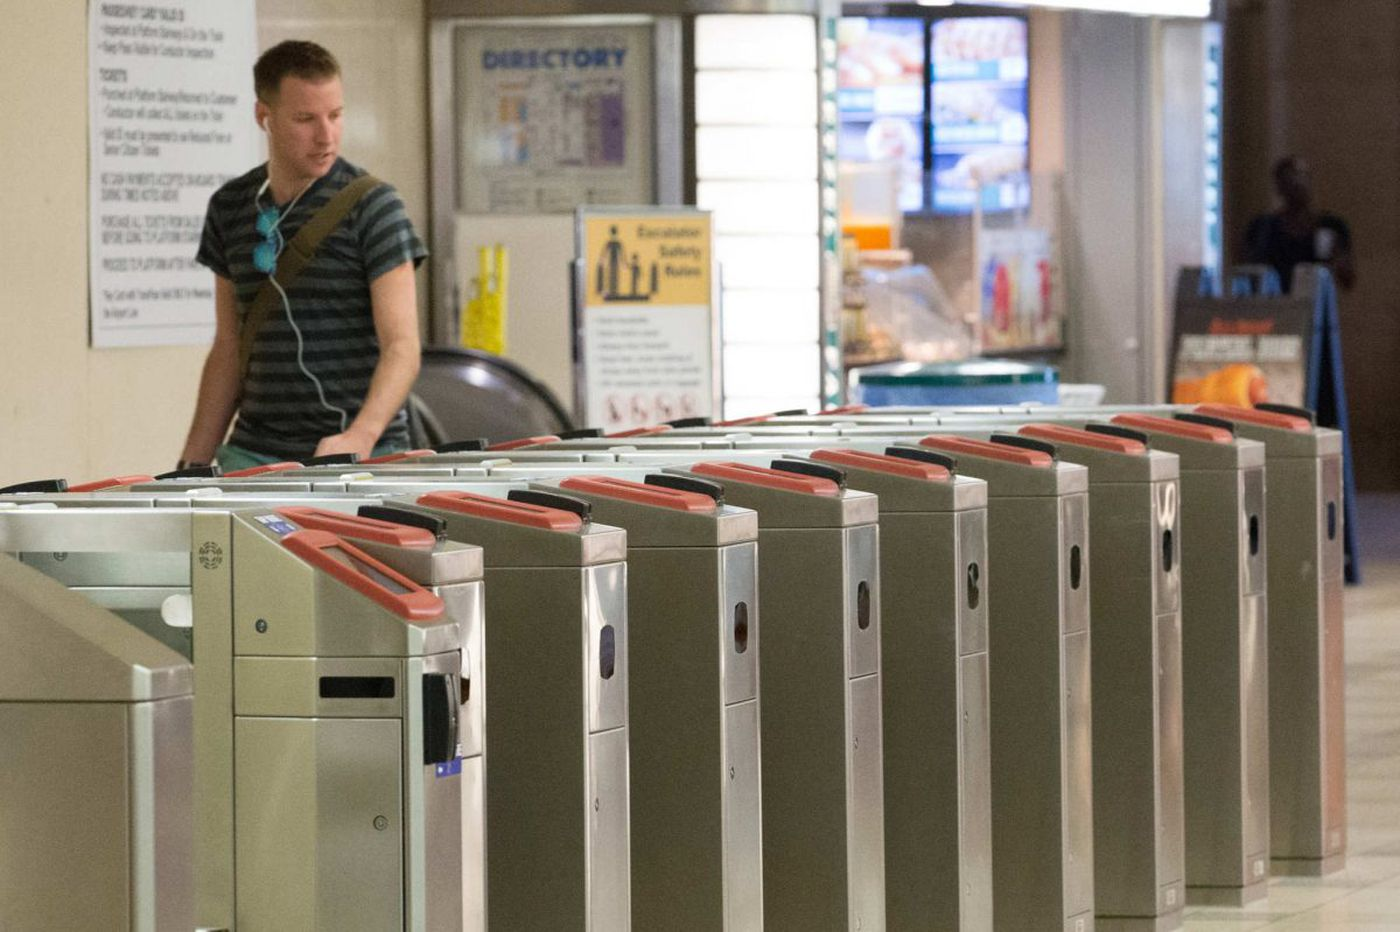 New Yorkers can now use credit, debit, smartphones to pay subway, bus fares. Why not in Philly?